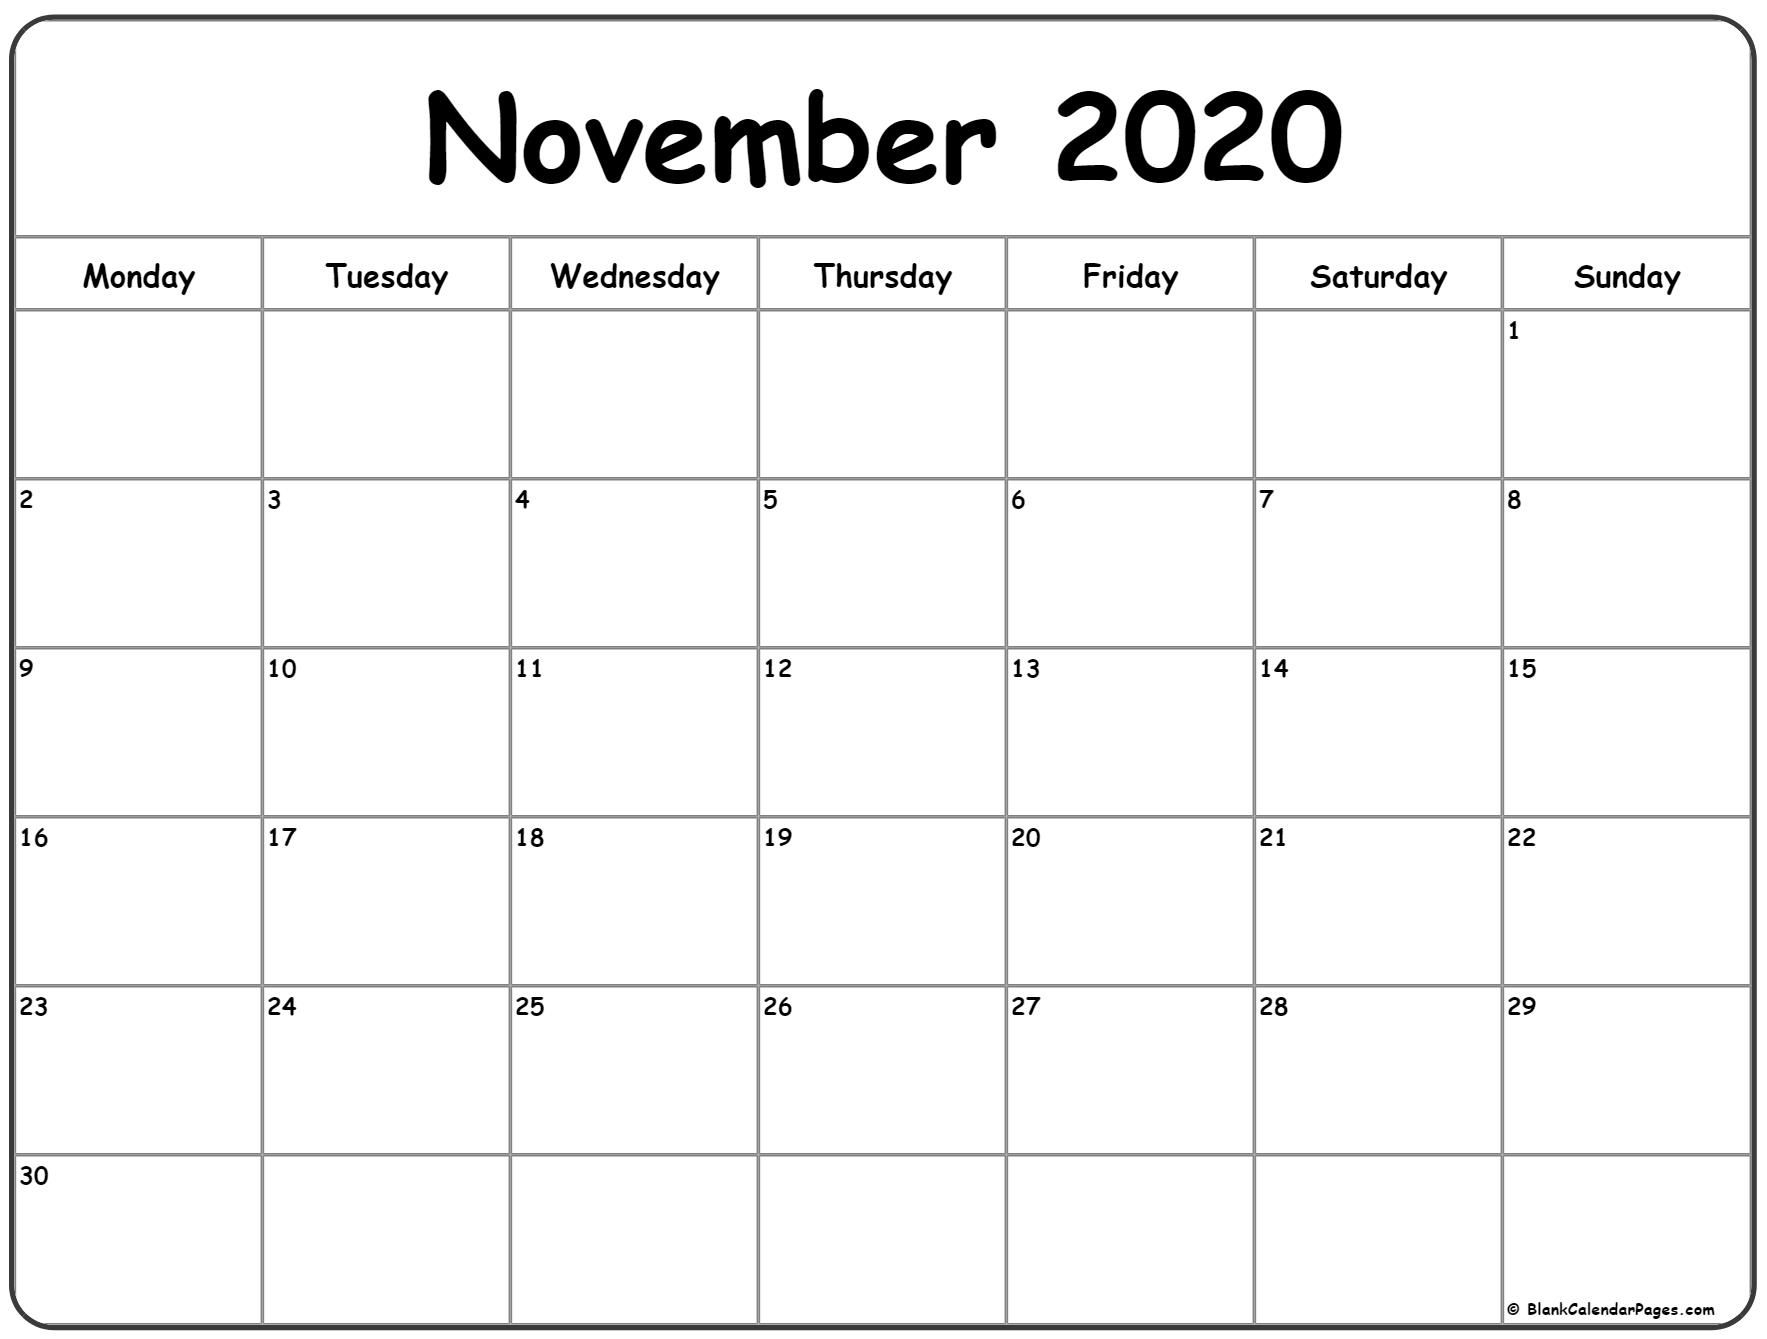 November 2020 Monday Calendar | Monday To Sunday In 2020 throughout 2020 Free Printable Calendars That Start With Monday